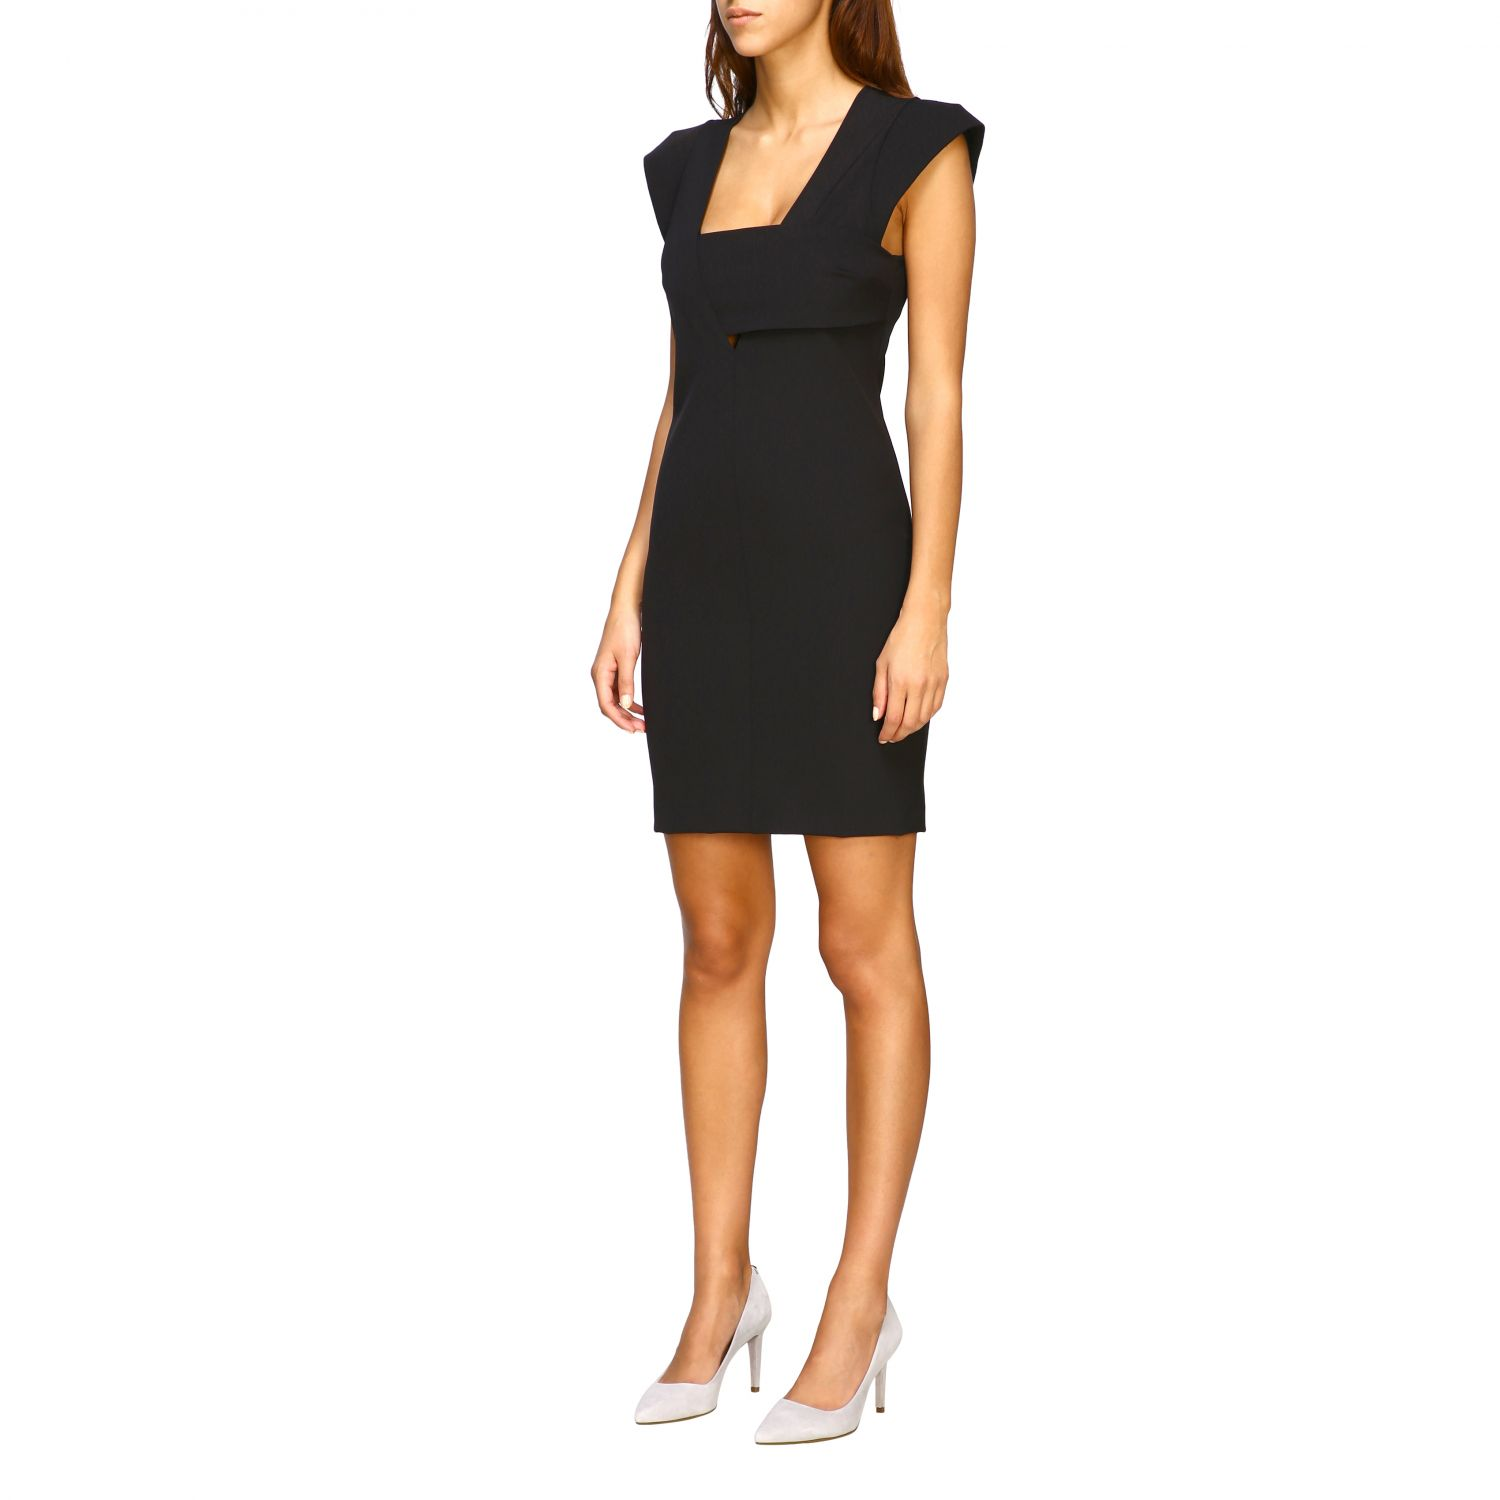 Dress women Patrizia Pepe black 3